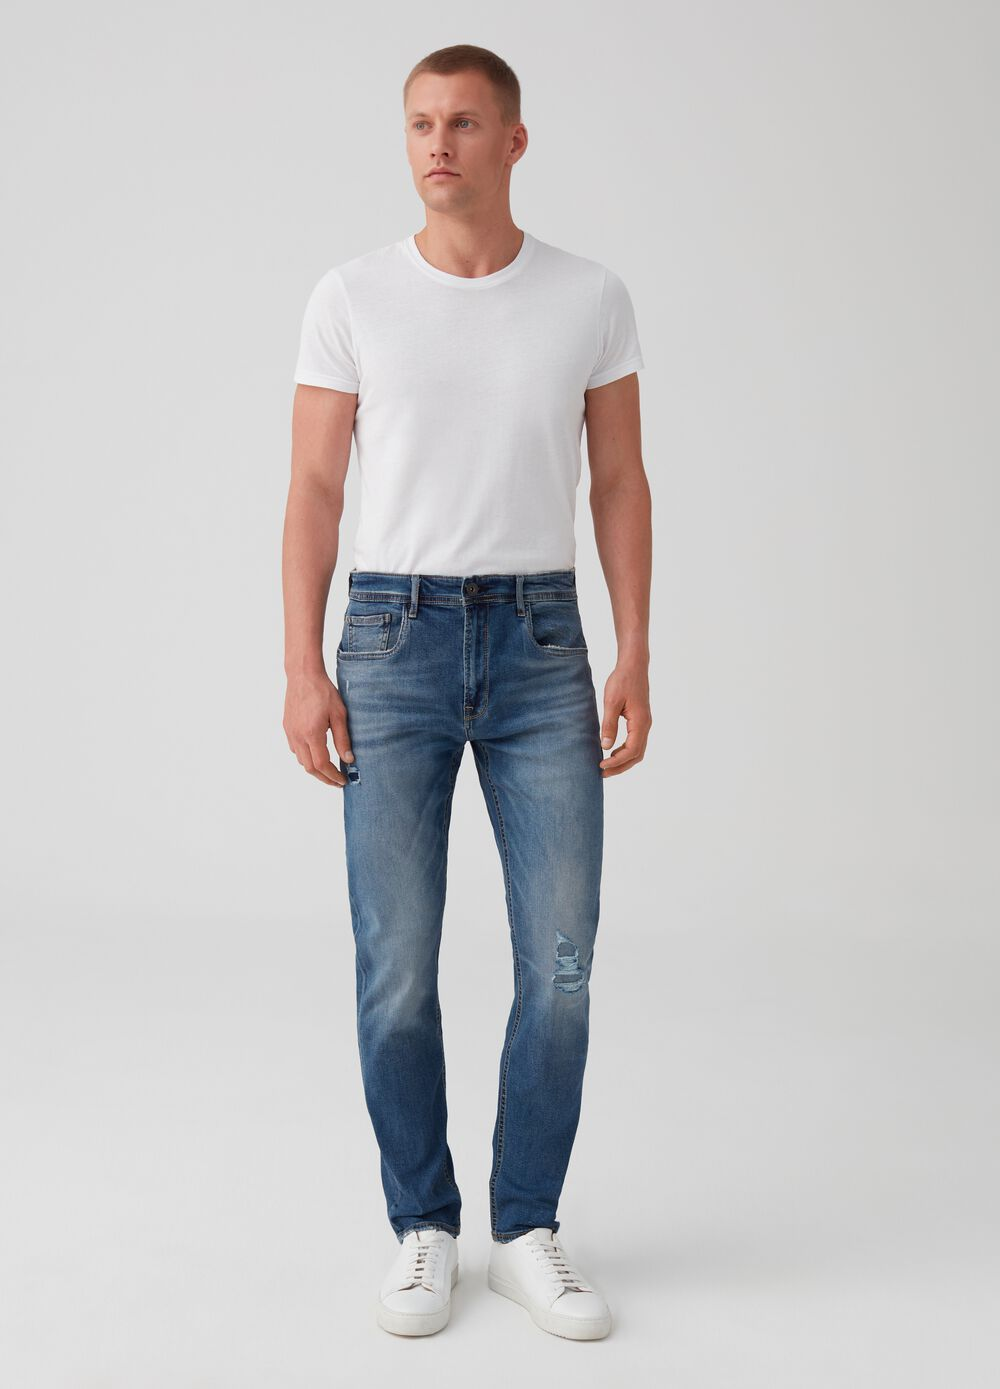 5-pocket slim-fit jeans